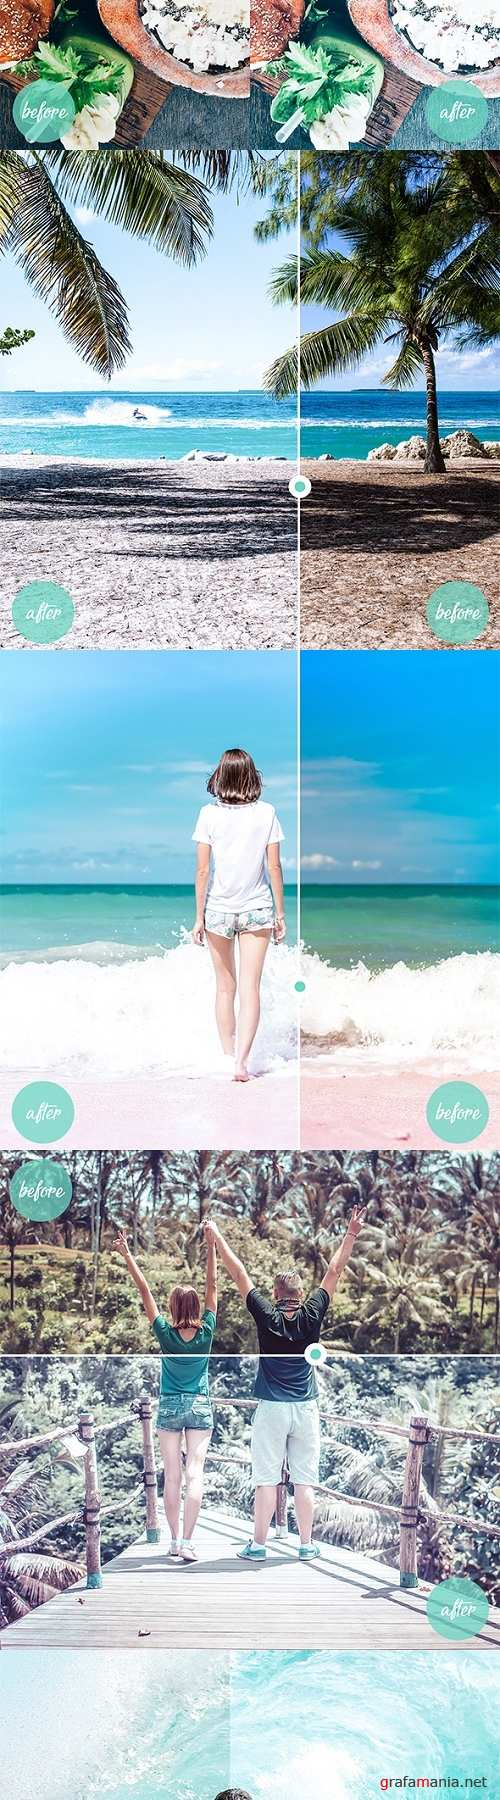 Hey Bali Mobile Lightroom Preset - 23723397